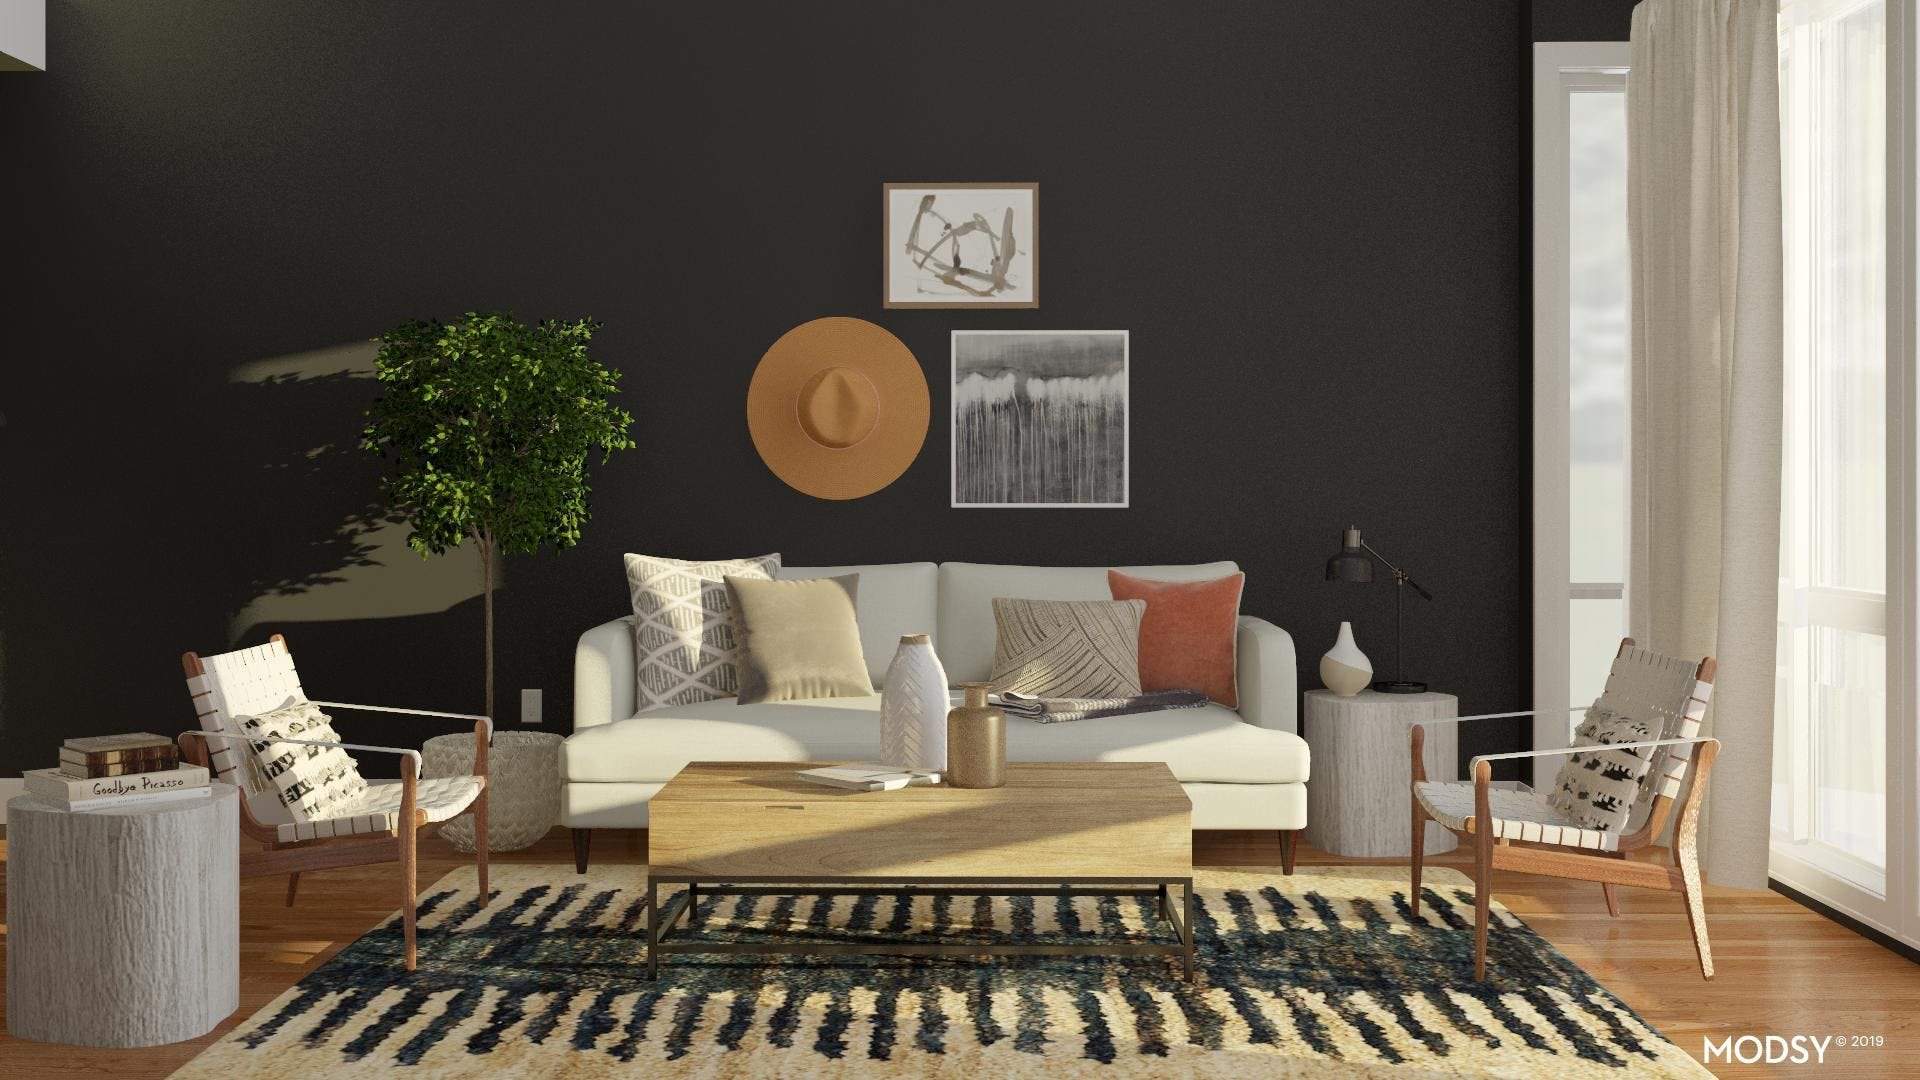 Modern Rustic Living Room with a Twist!